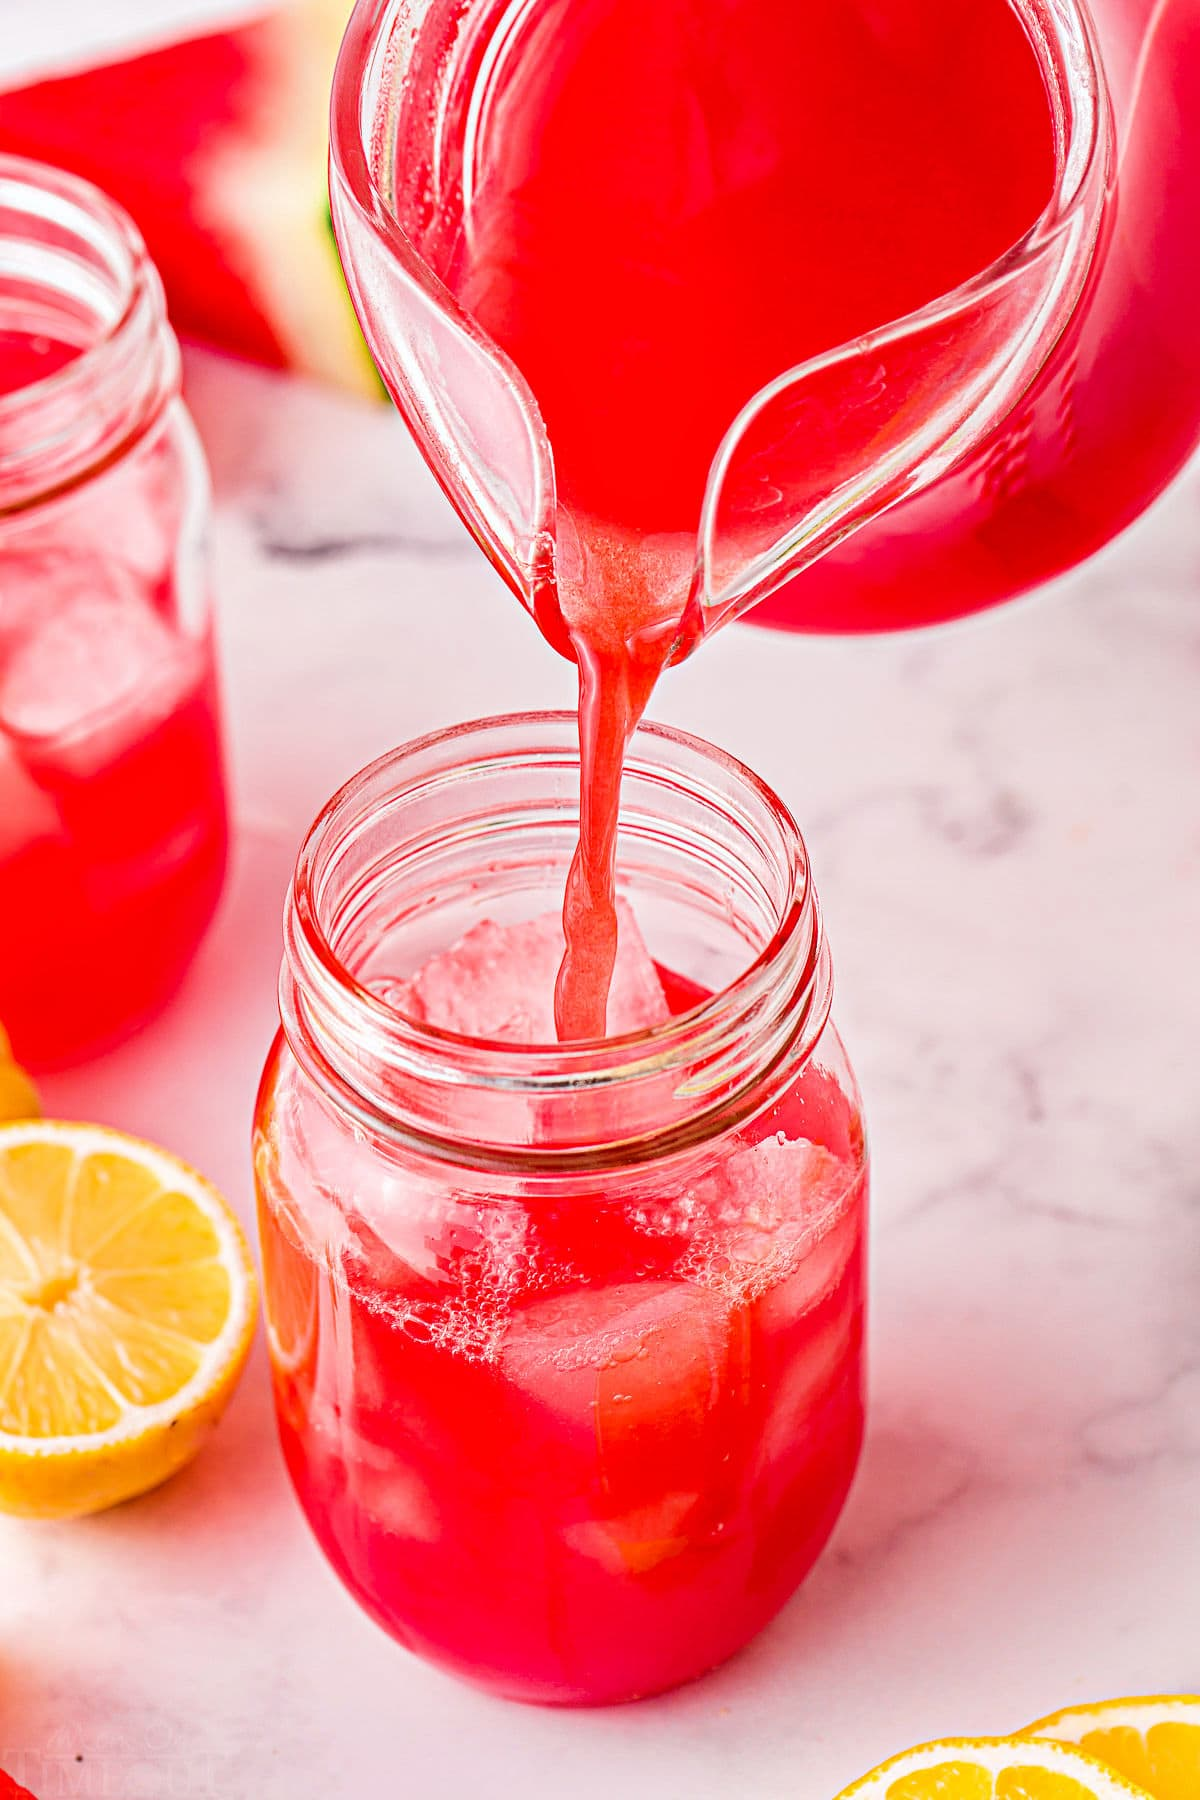 watermelon lemonade being poured into large glass.